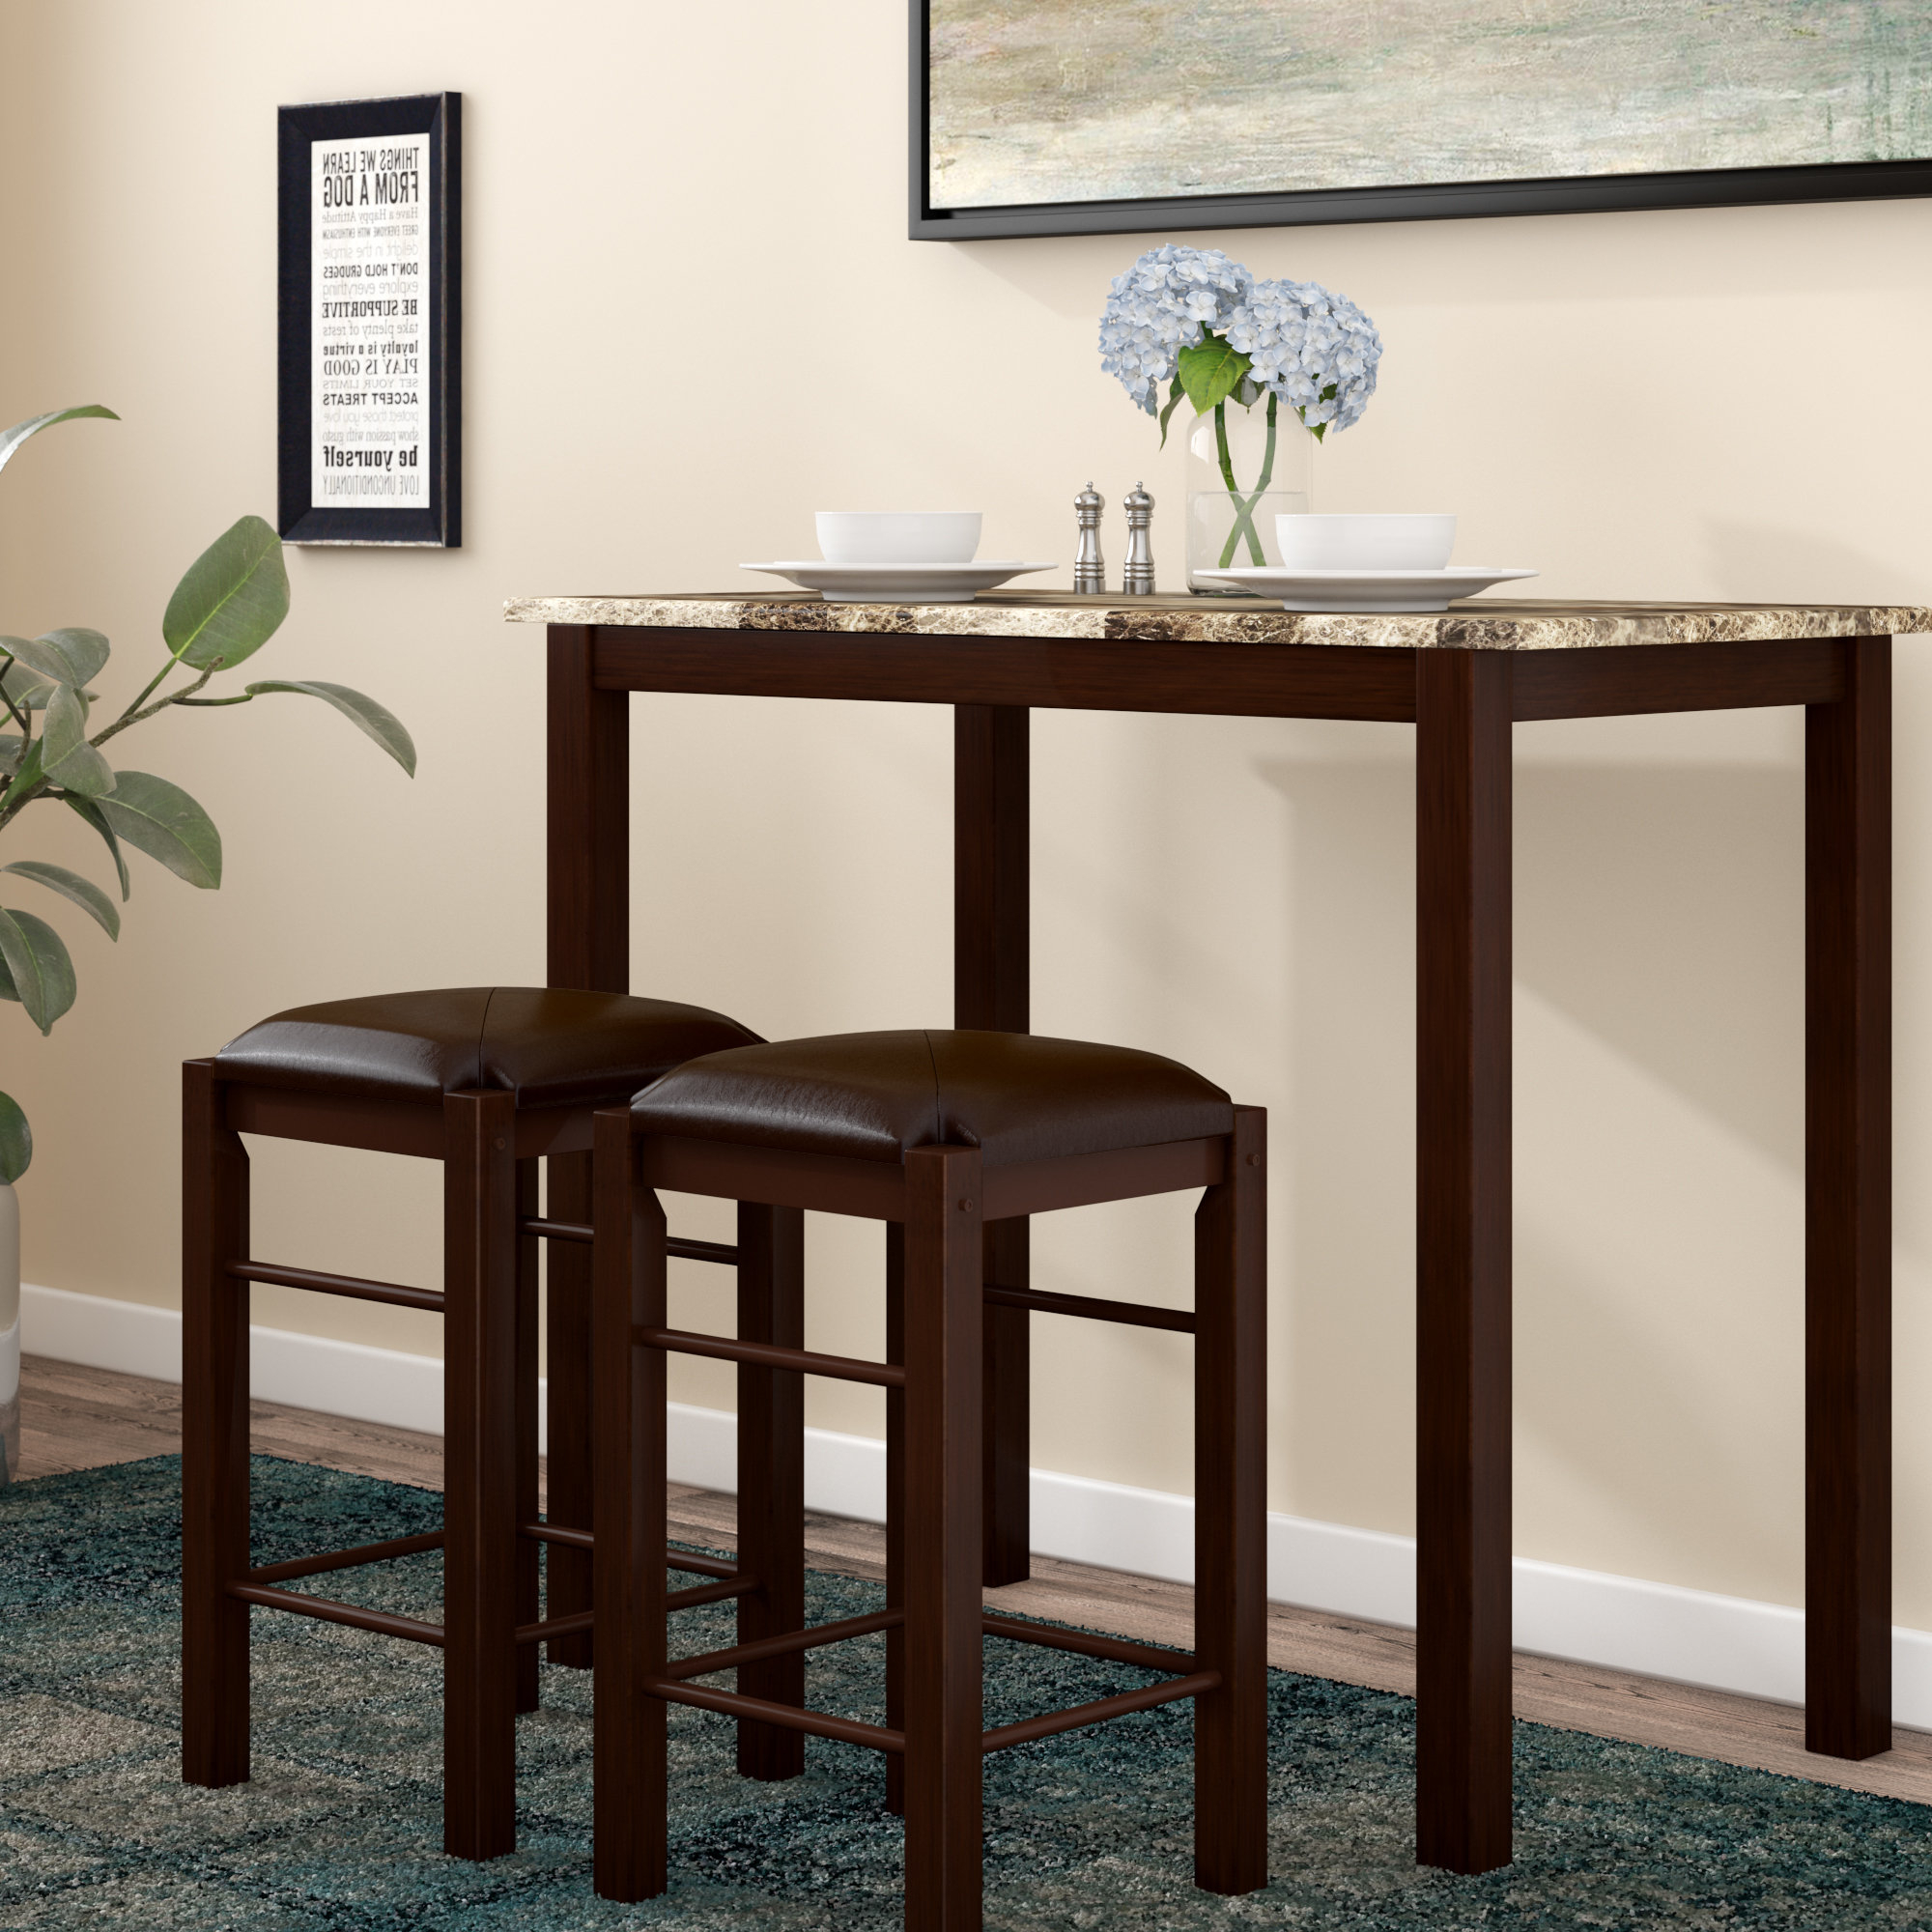 Latest Penelope 3 Piece Counter Height Wood Dining Set With Regard To Debby Small Space 3 Piece Dining Sets (View 7 of 20)